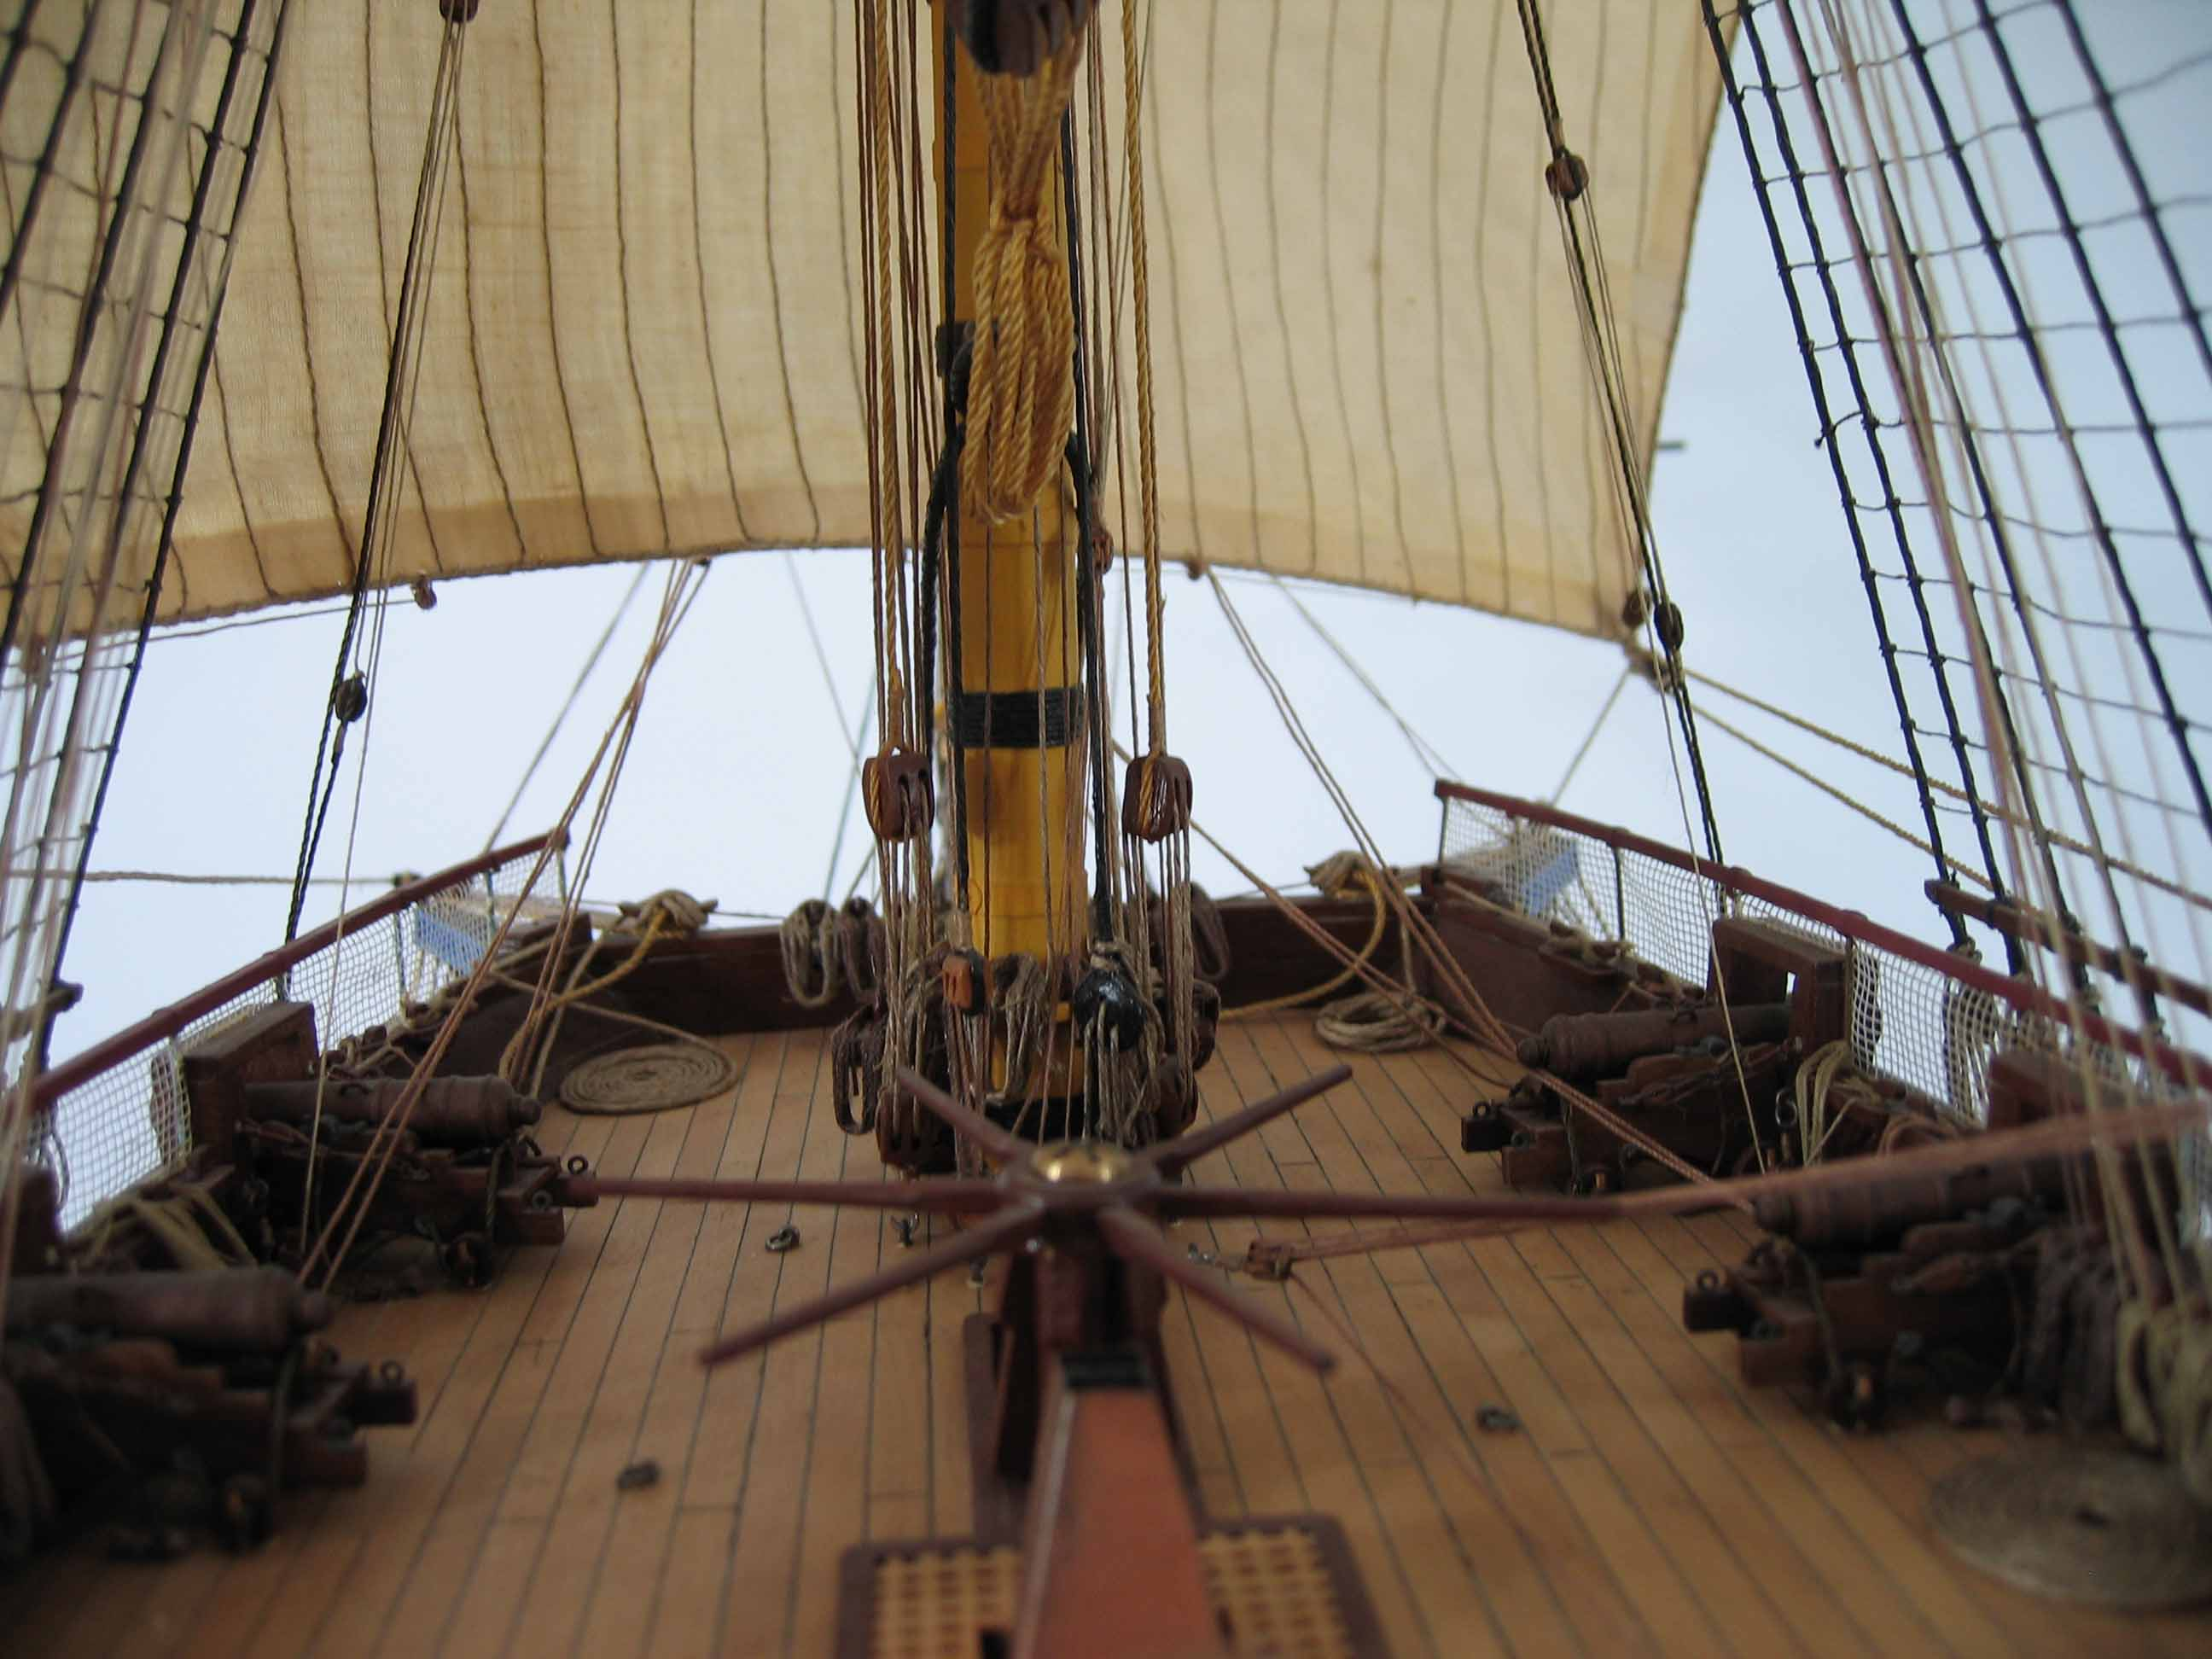 Close-up photos: ship model French 40 gun frigate of 18th